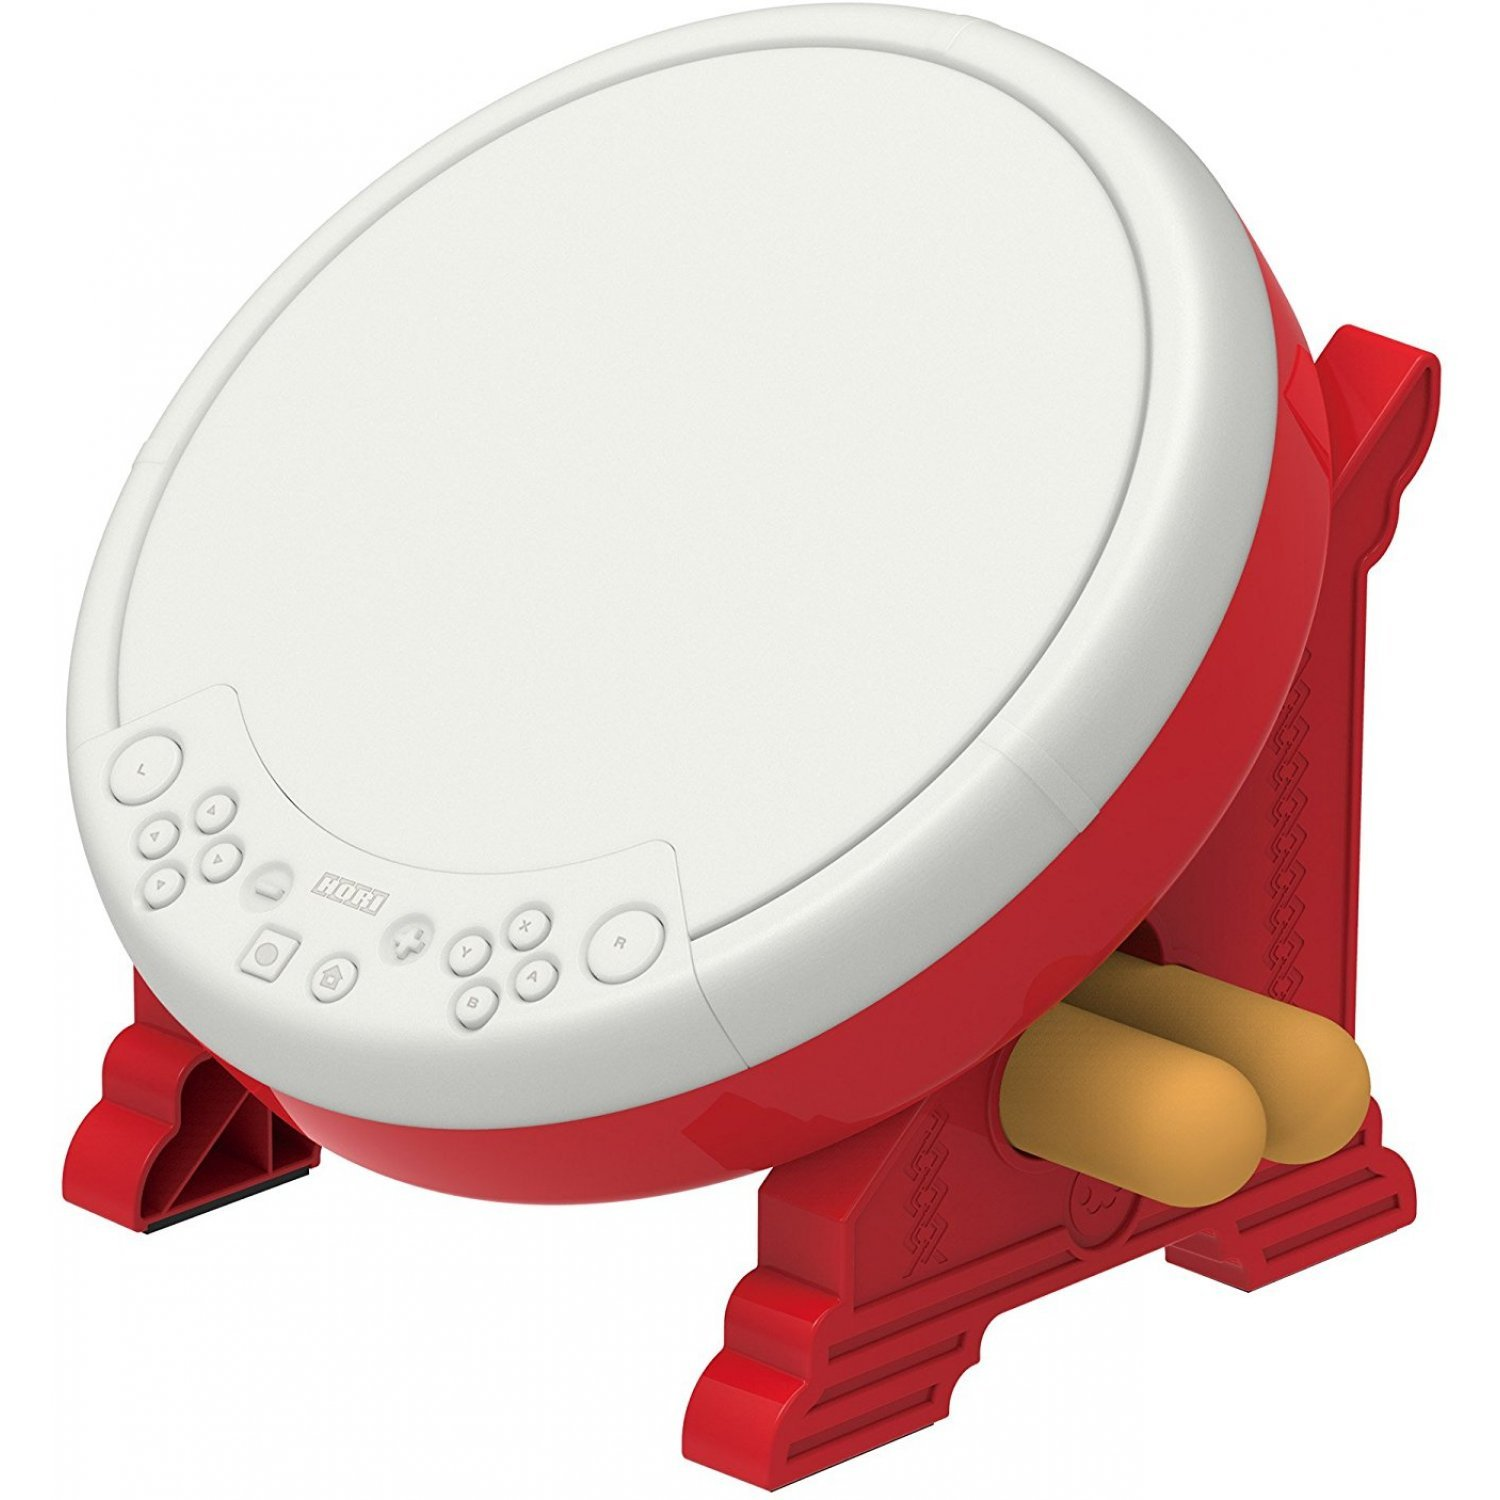 Hori Taiko Drum Controller Won't Be Released In The West